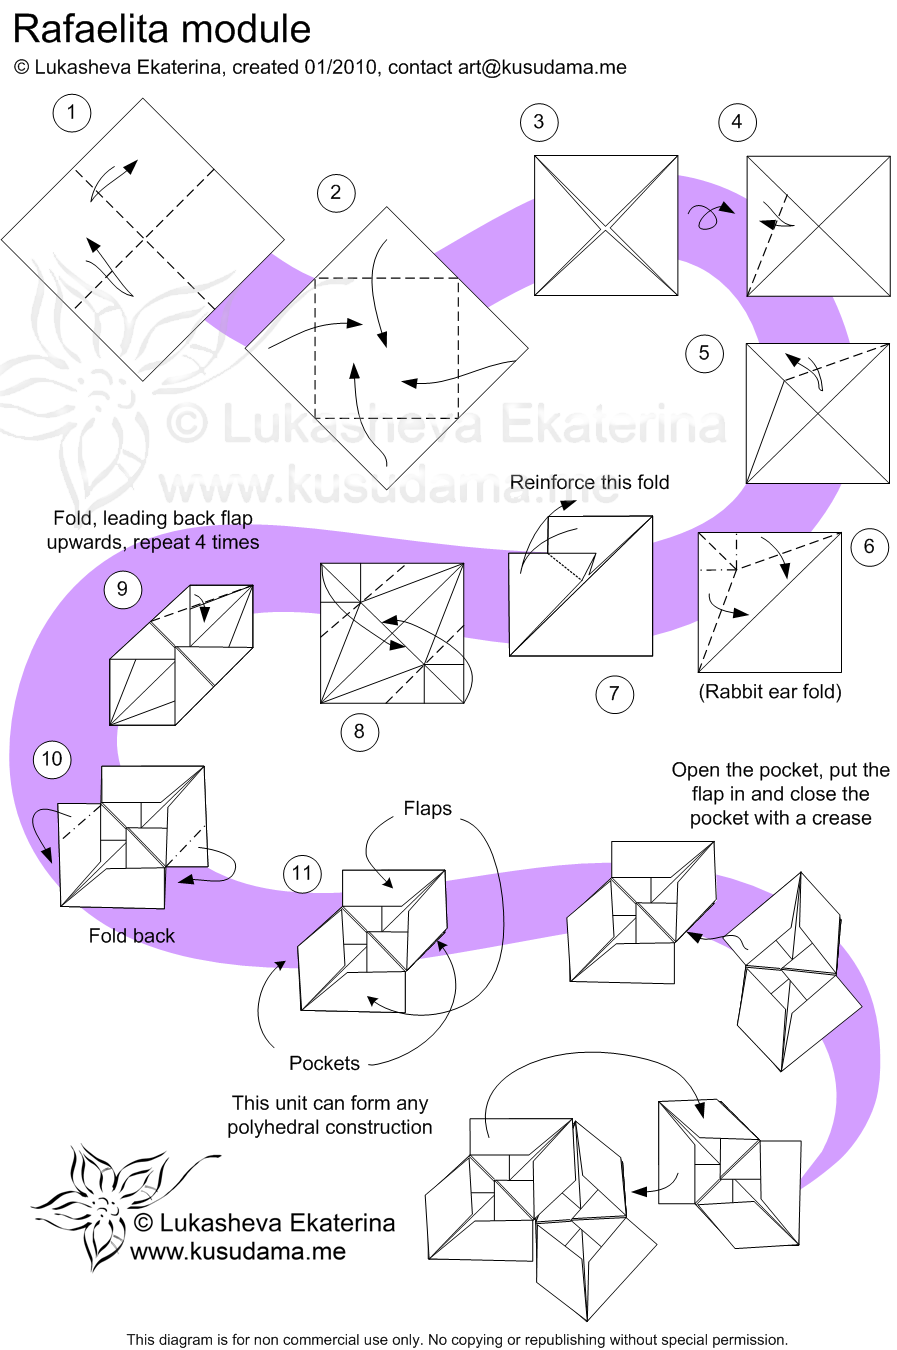 Diagram for Rafaelita-30 kusudama